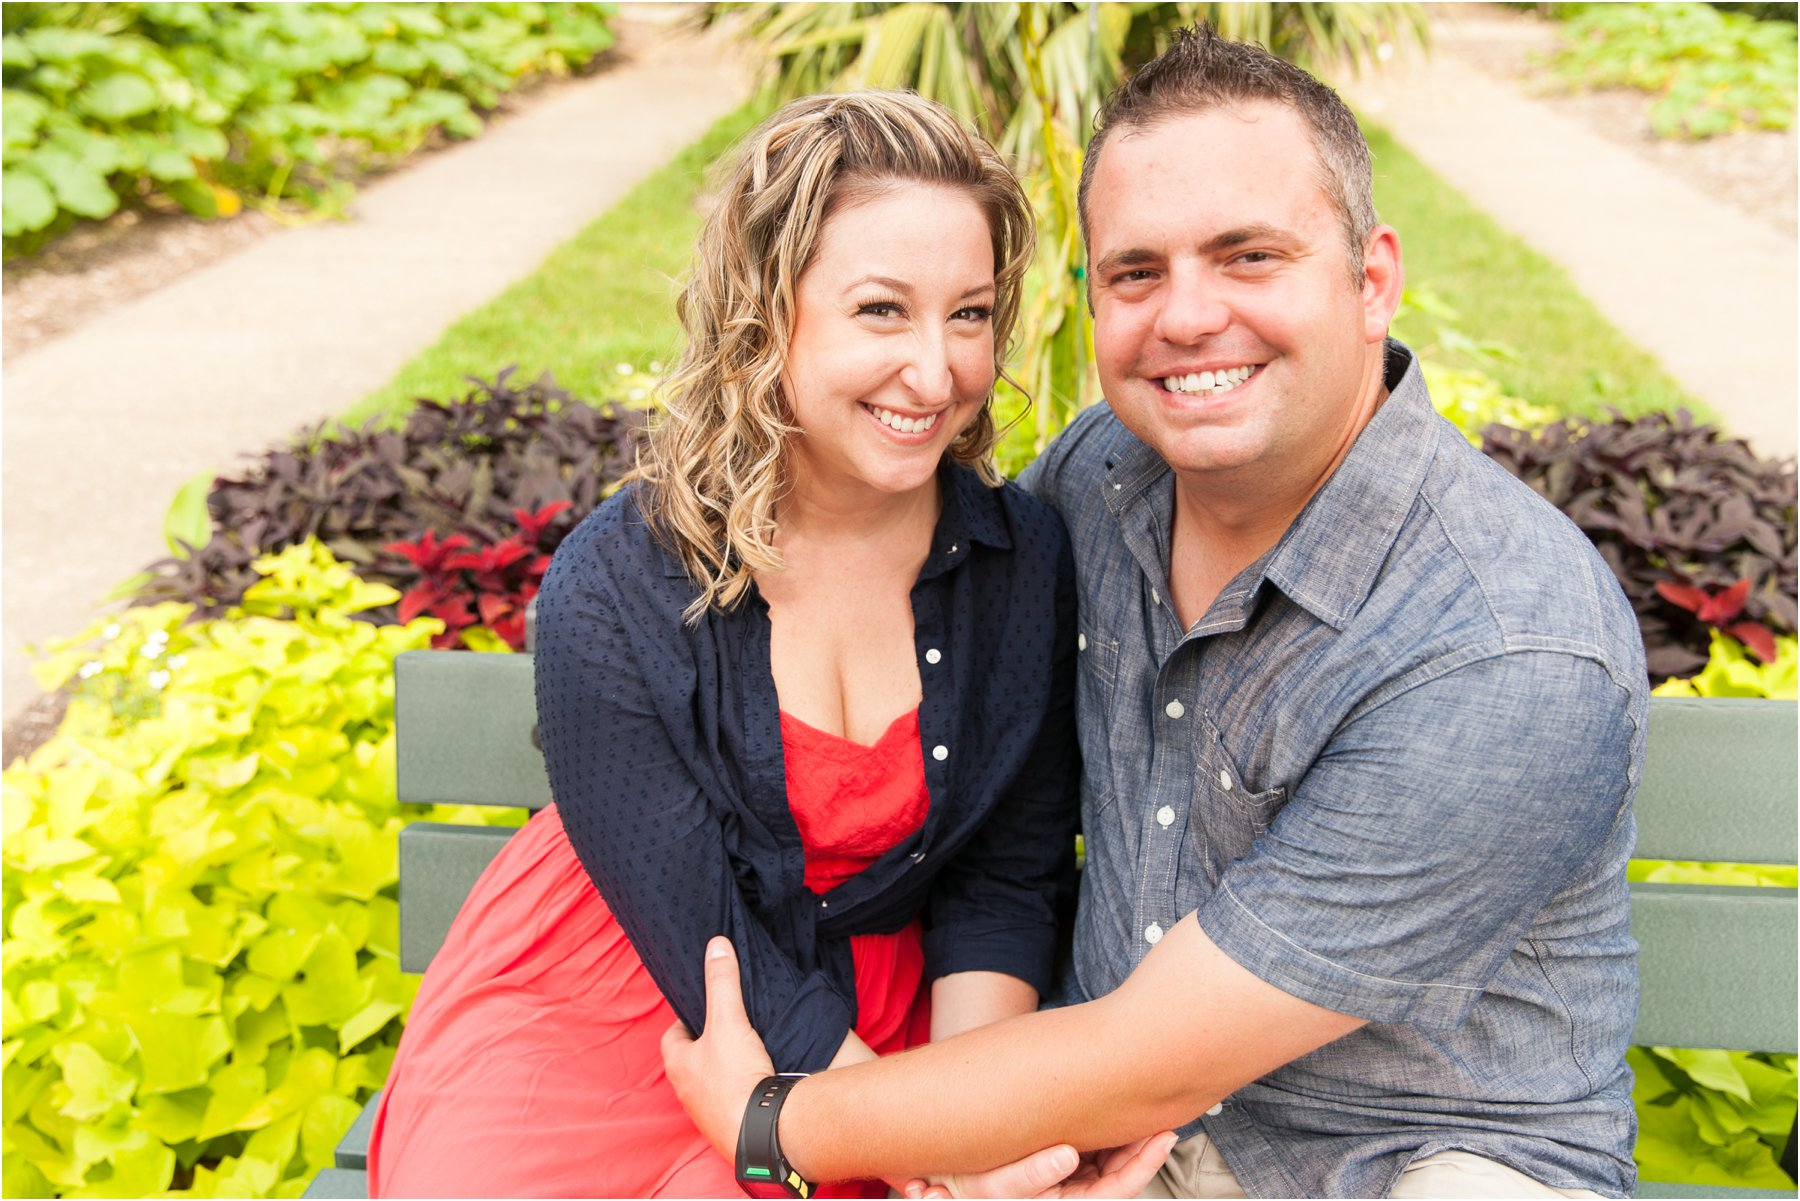 Nofolk_Zoo_engagement_photography_virginia_Jessica_ryan_photography_0133